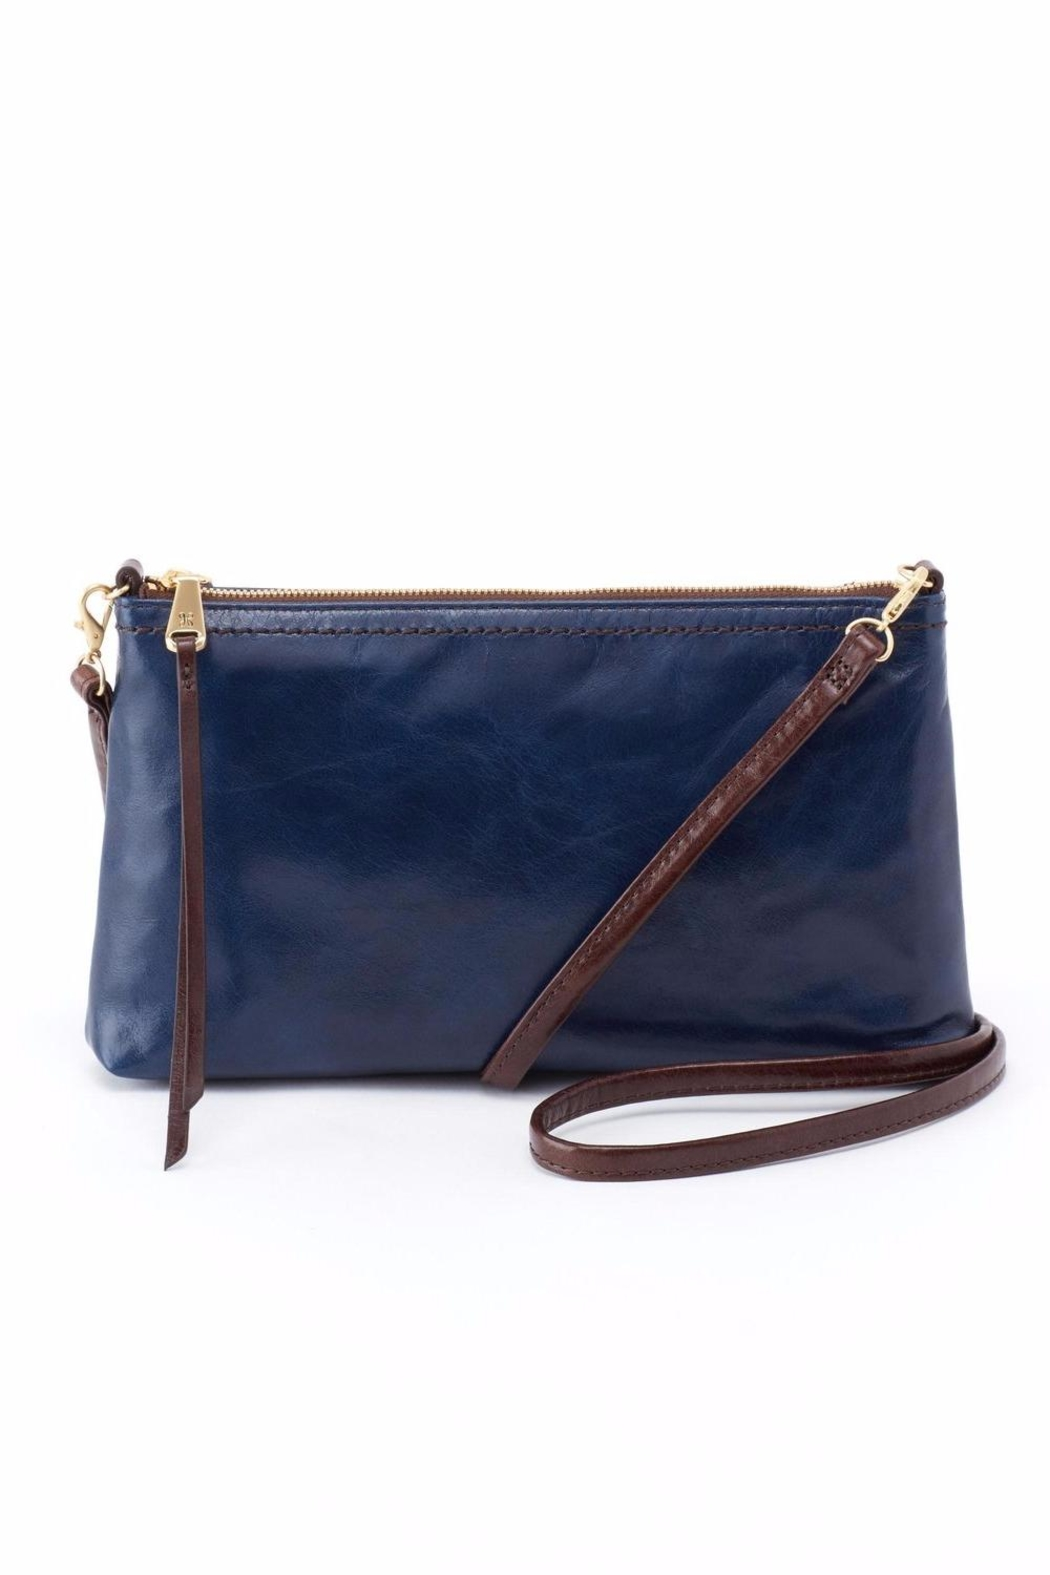 HOBO Bags Darcy Crossbody Bag - Main Image